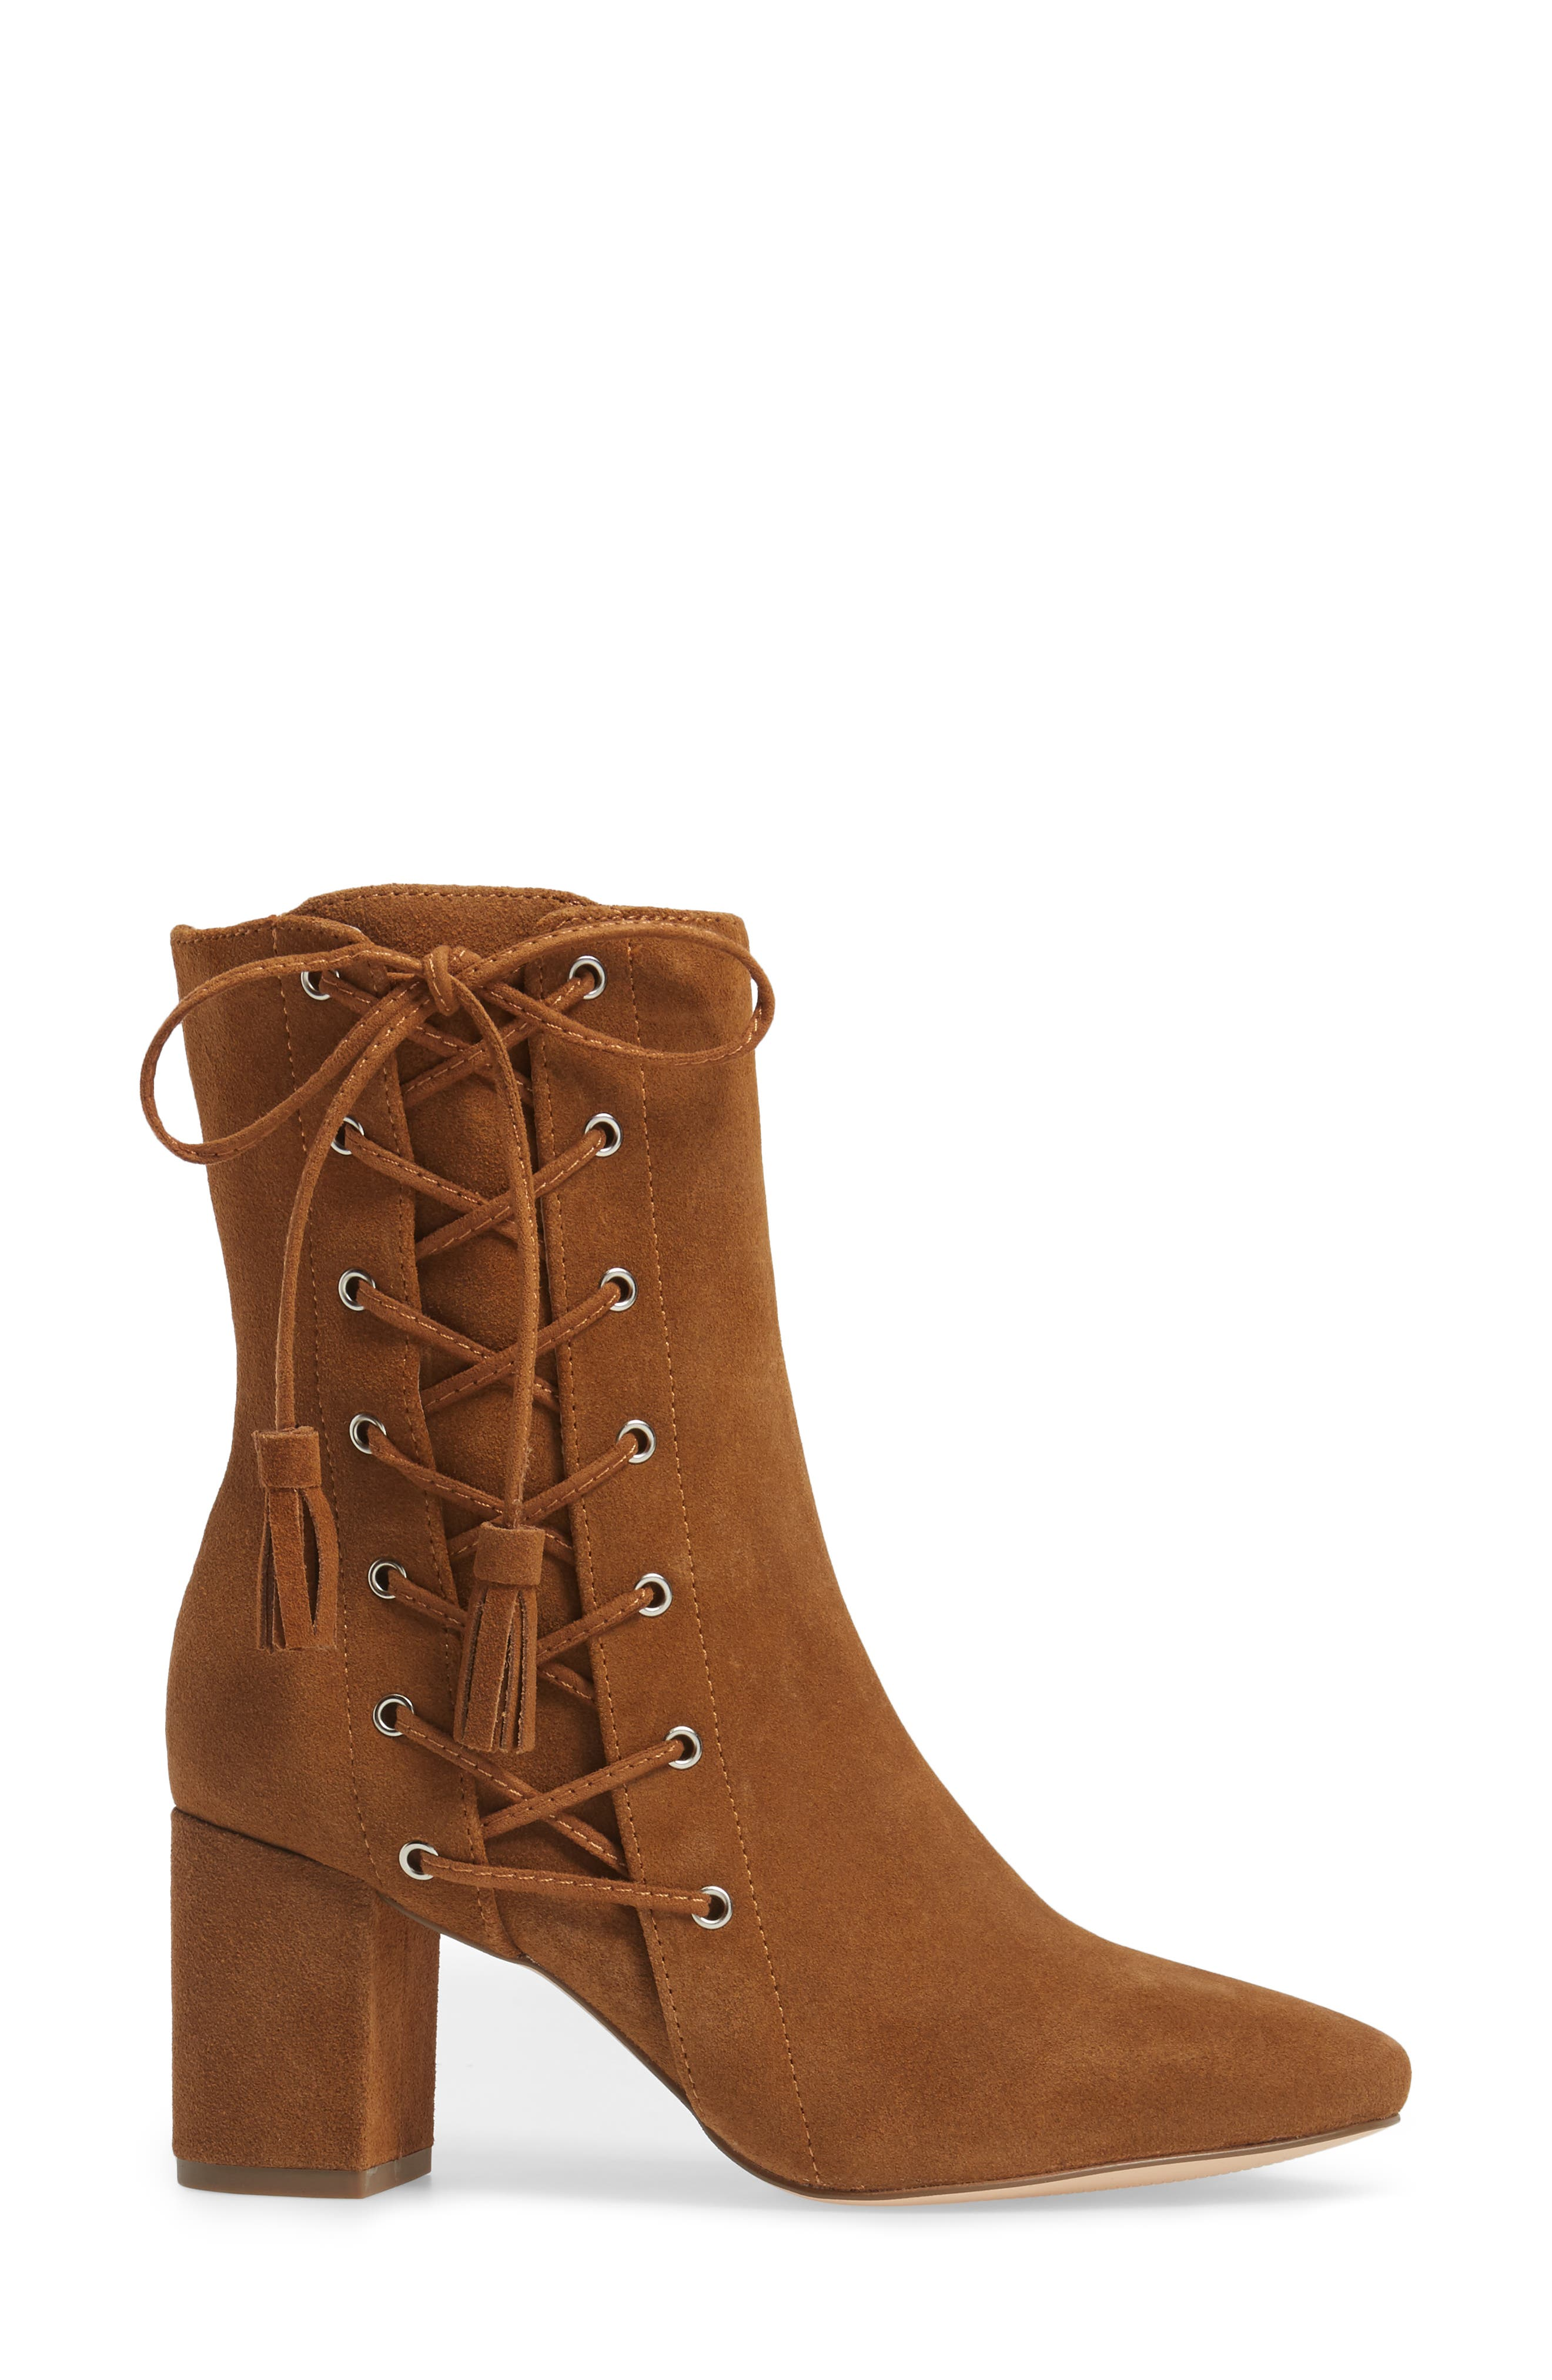 Alternate Image 3  - Matisse Harp Lace-Up Bootie (Women)